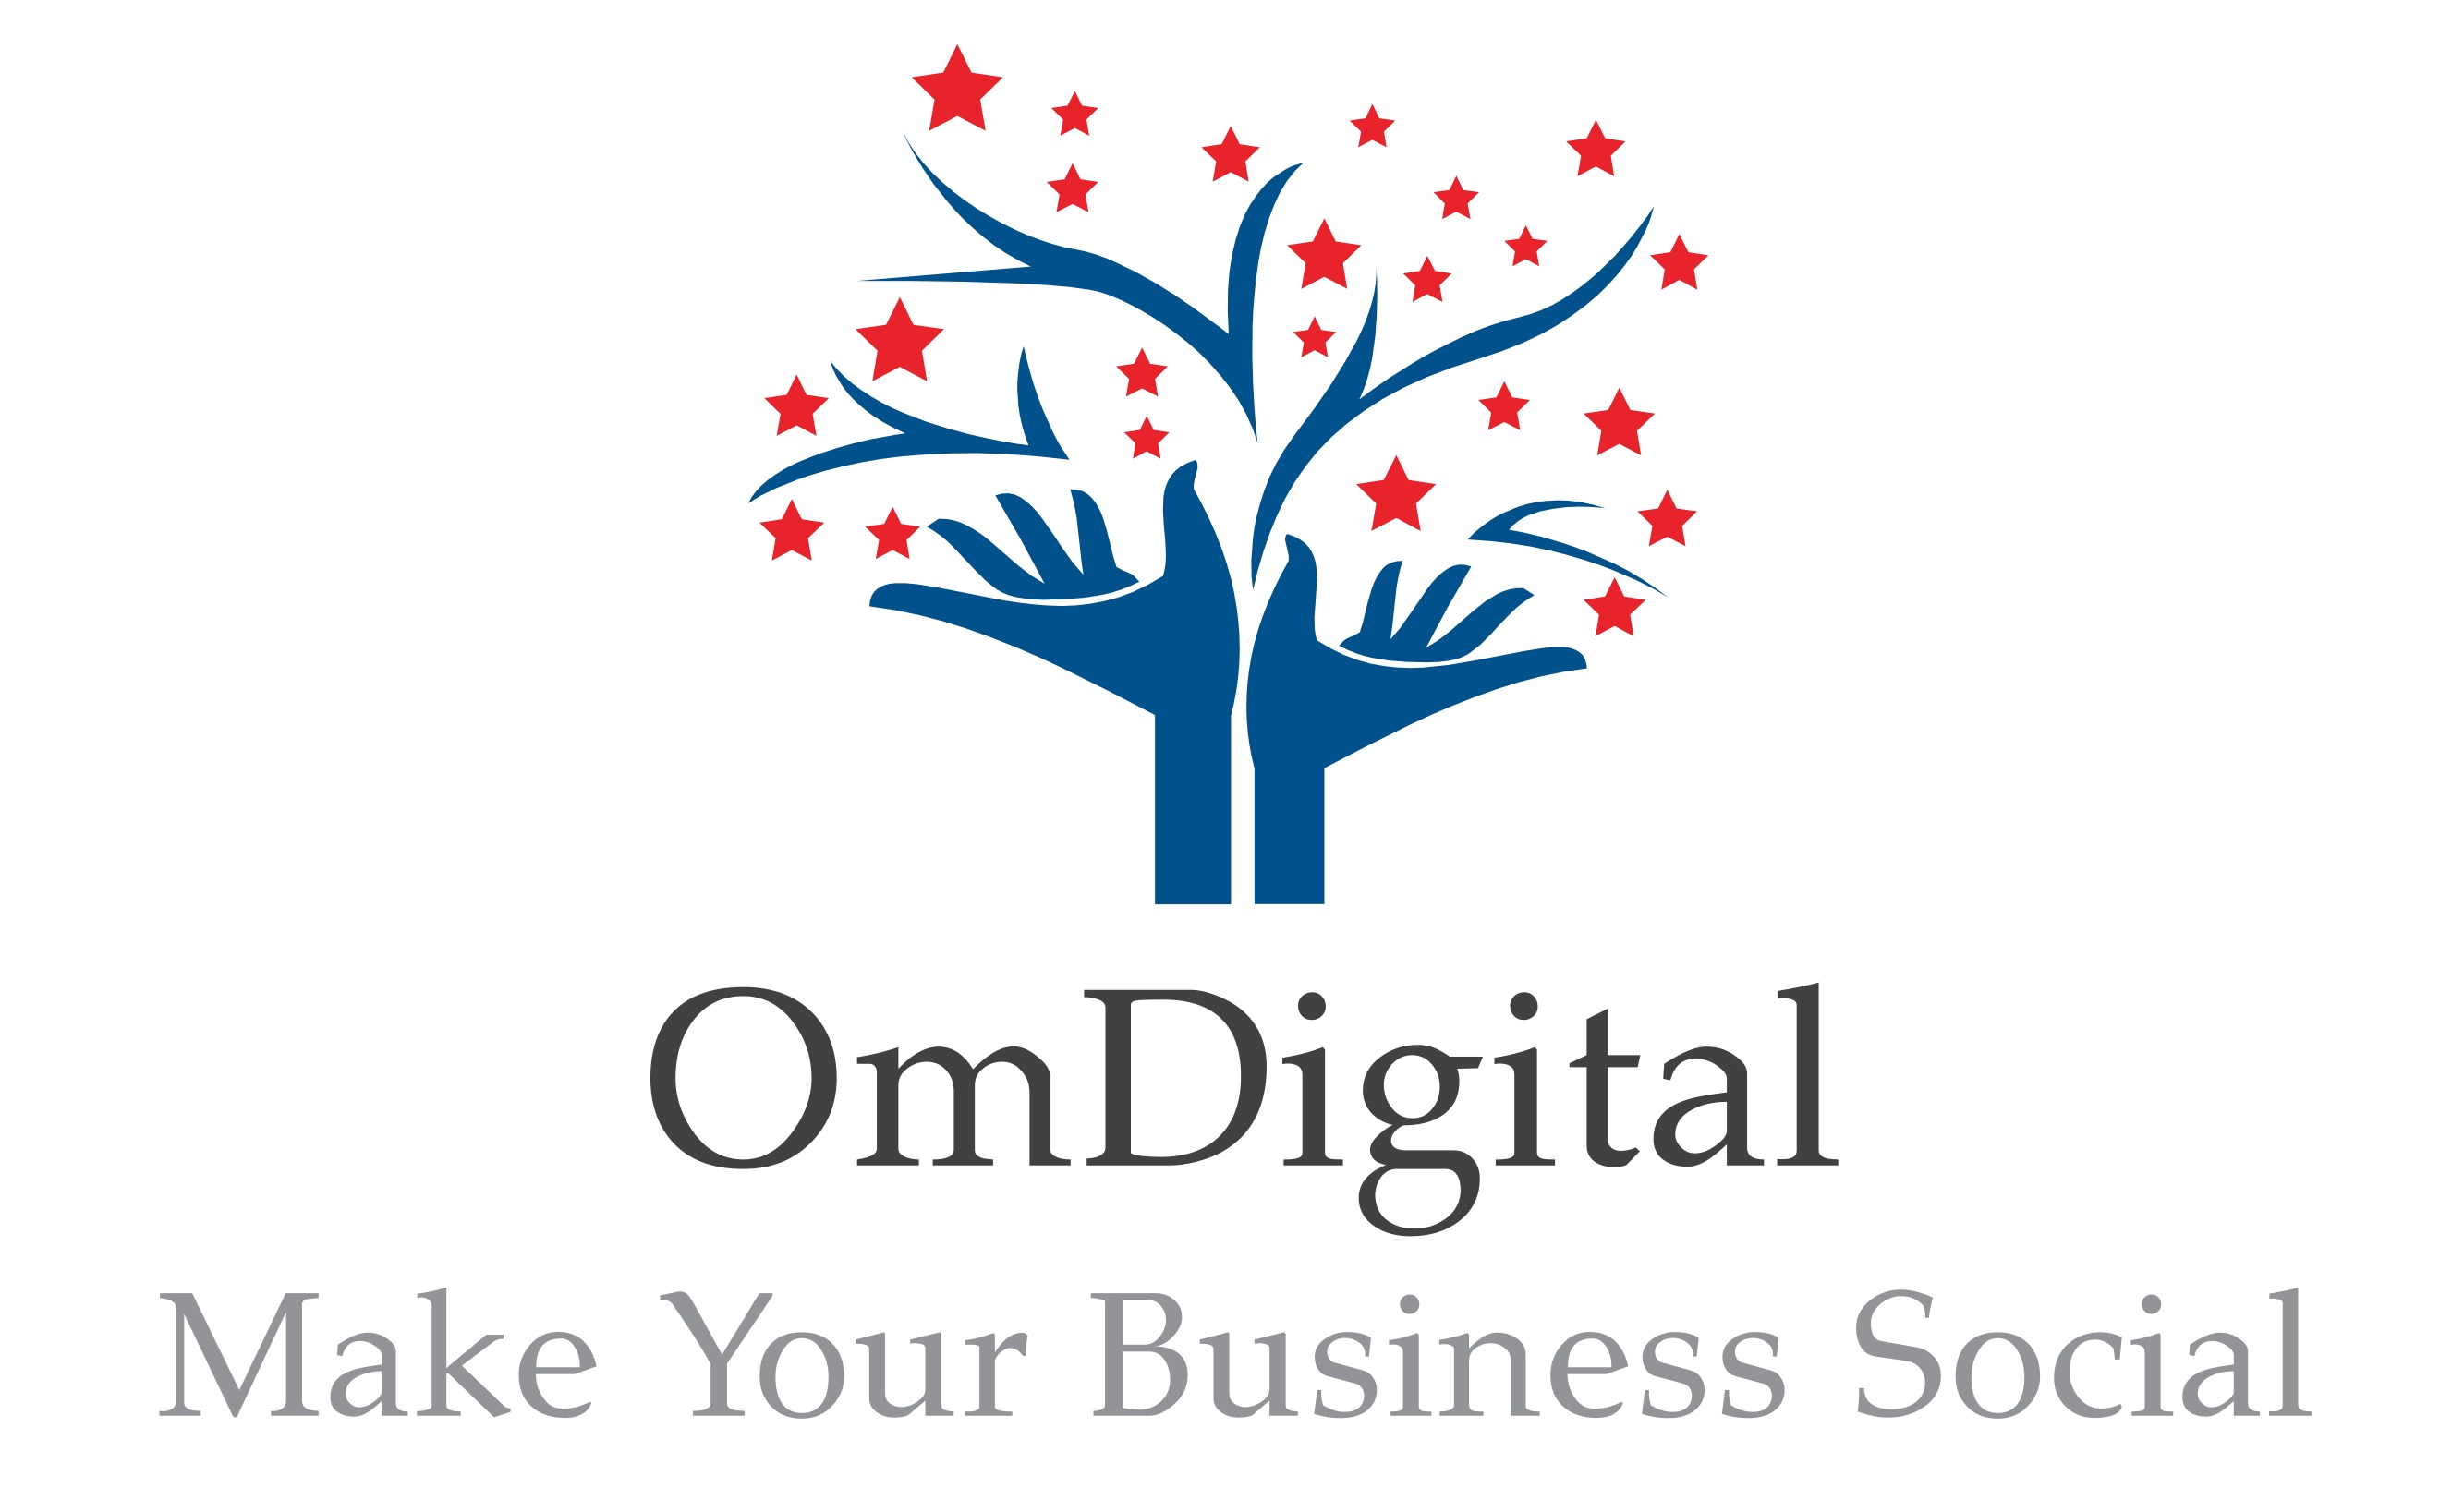 Make Your Business Social